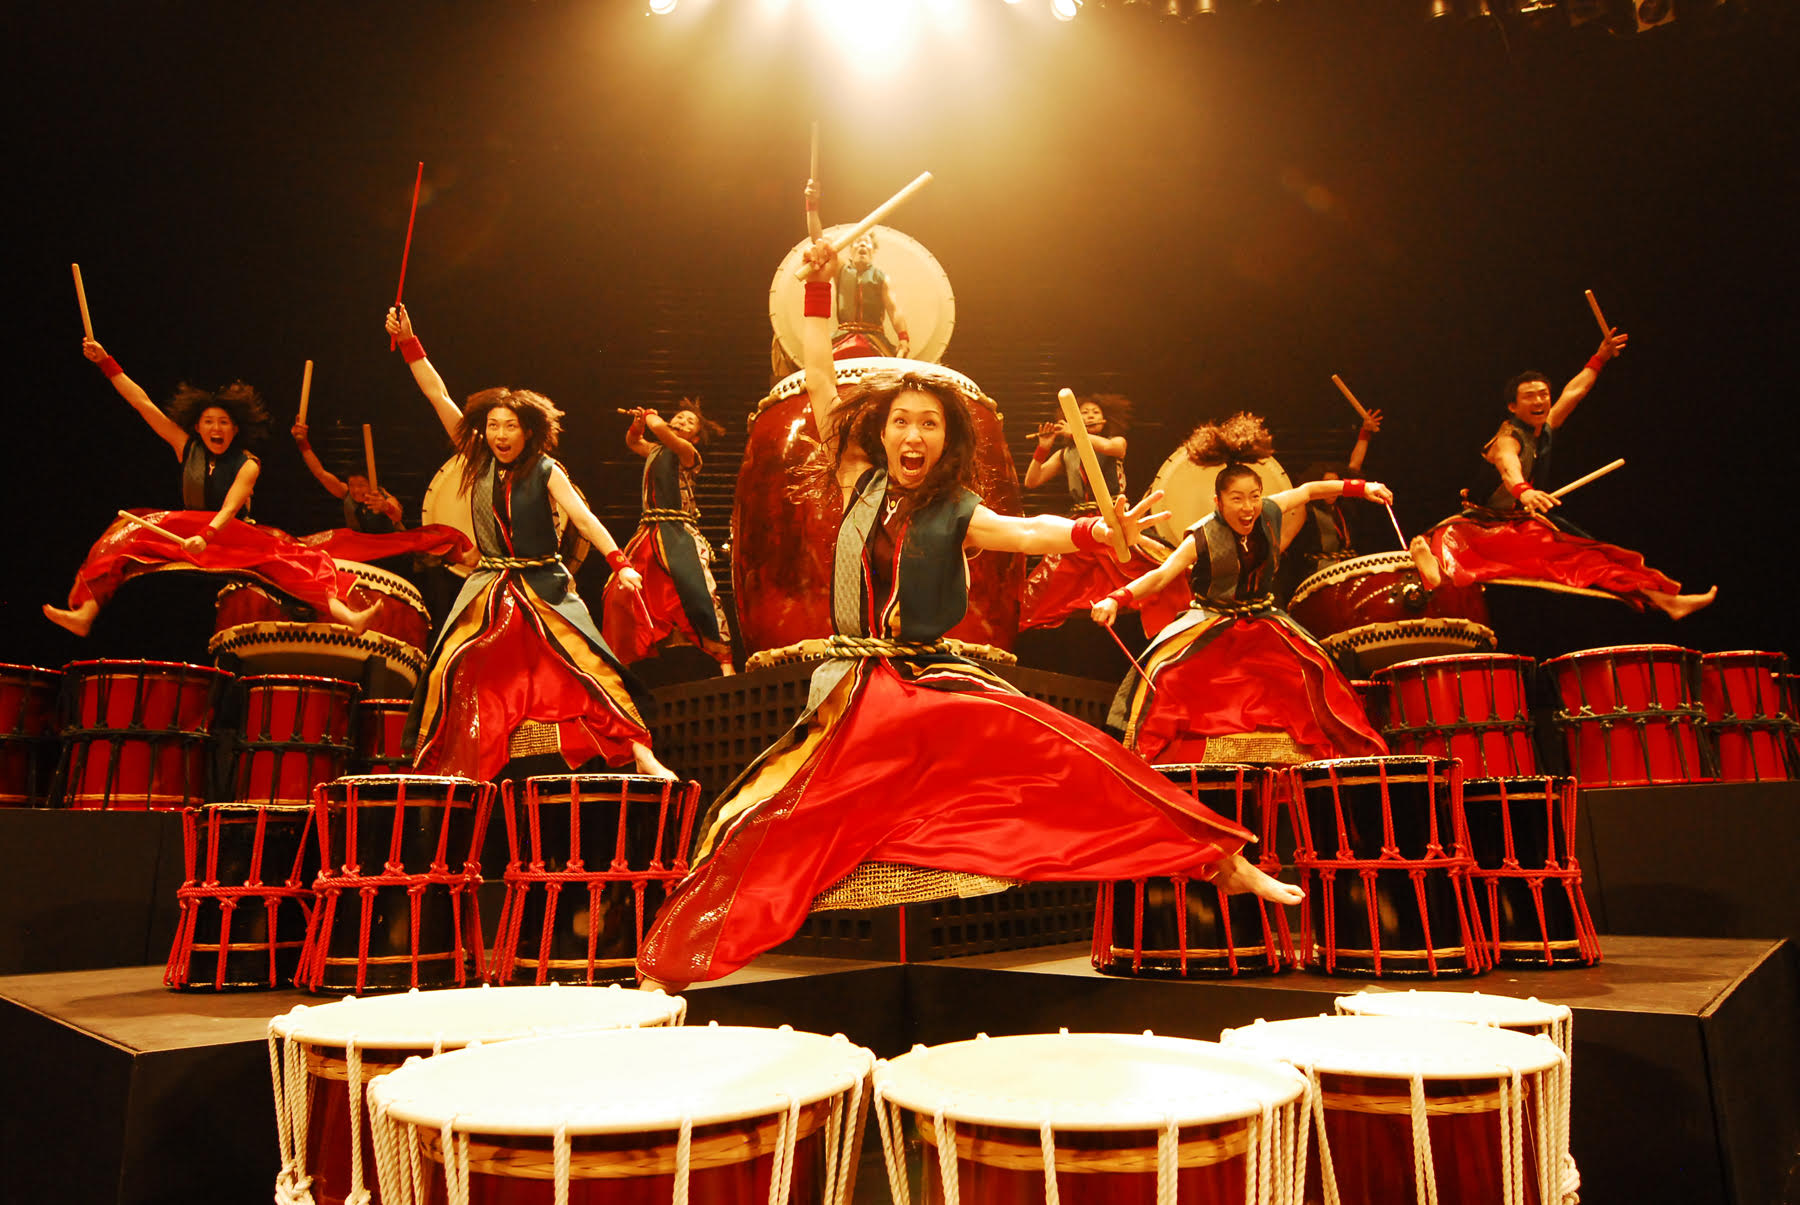 Japanese drummers photos 57